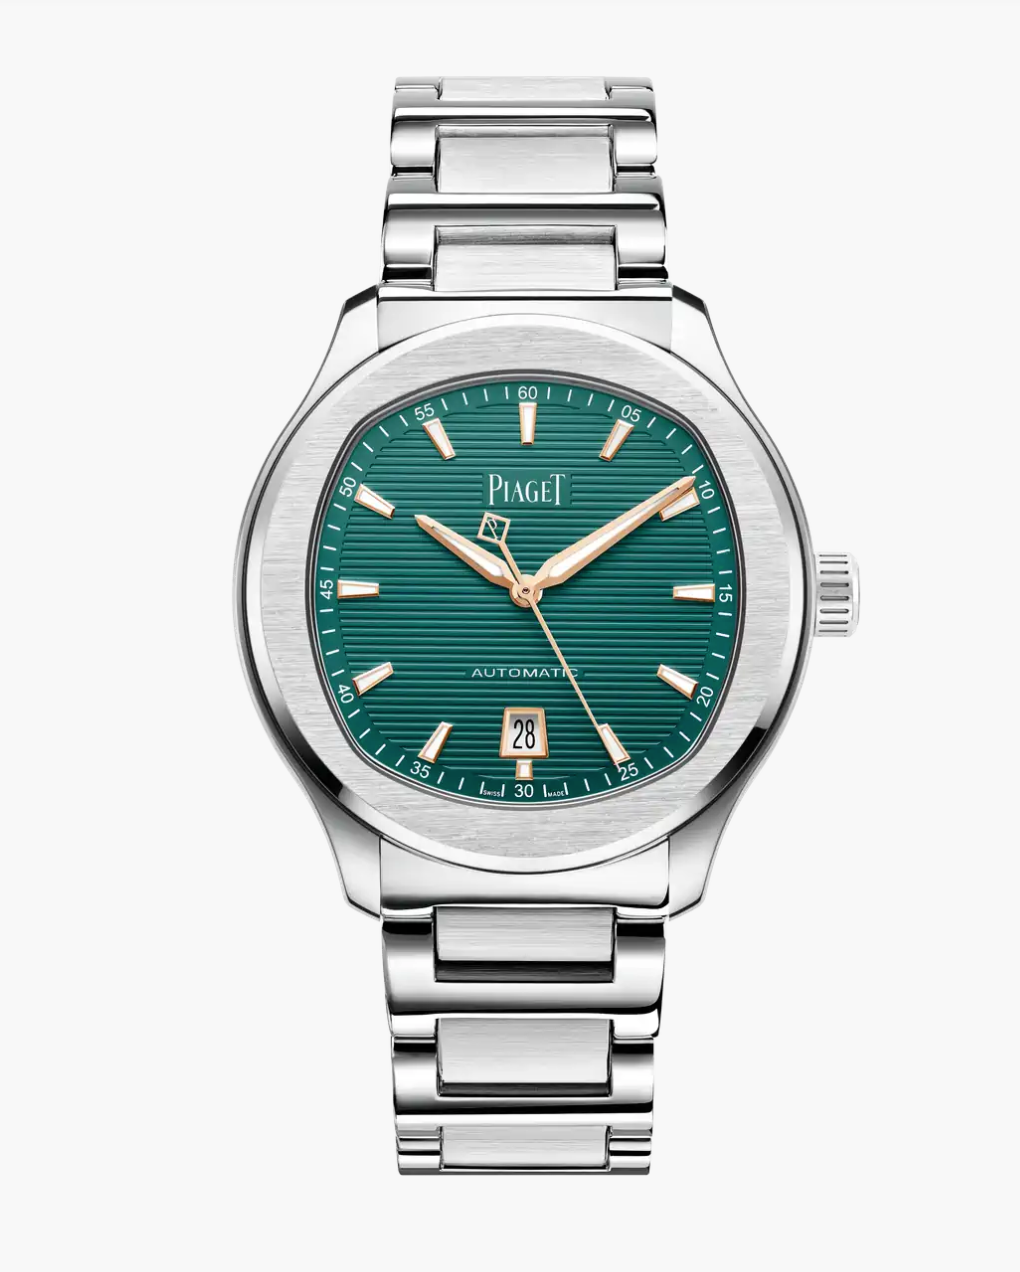 Piaget Polo S Green NOVELTY LIMITED SERIES of 888 Piece